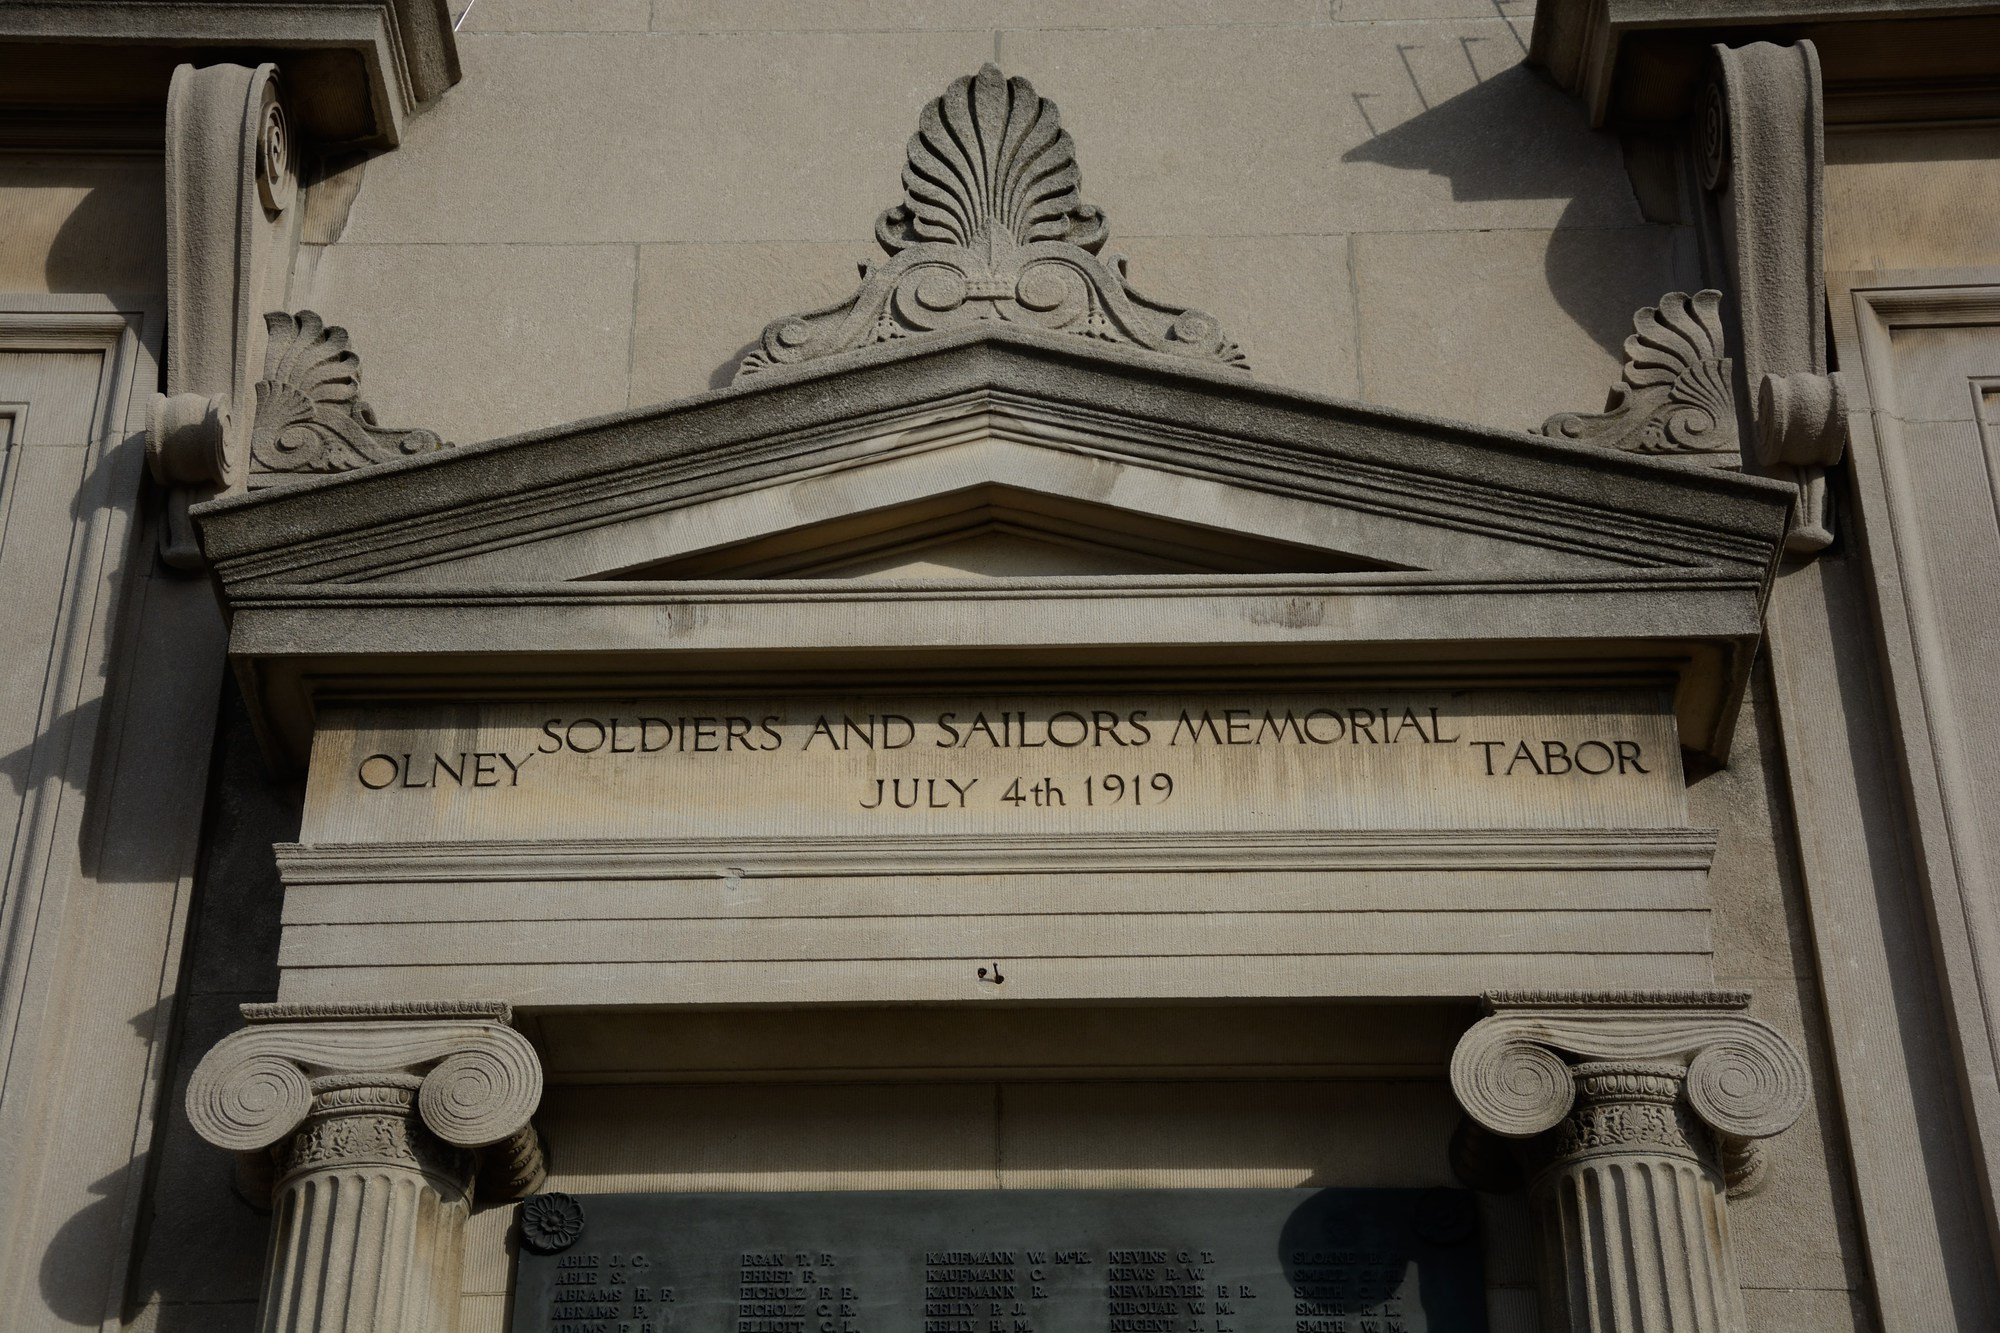 Olney Tabor Soldiers and Sailors Memorial (PA)